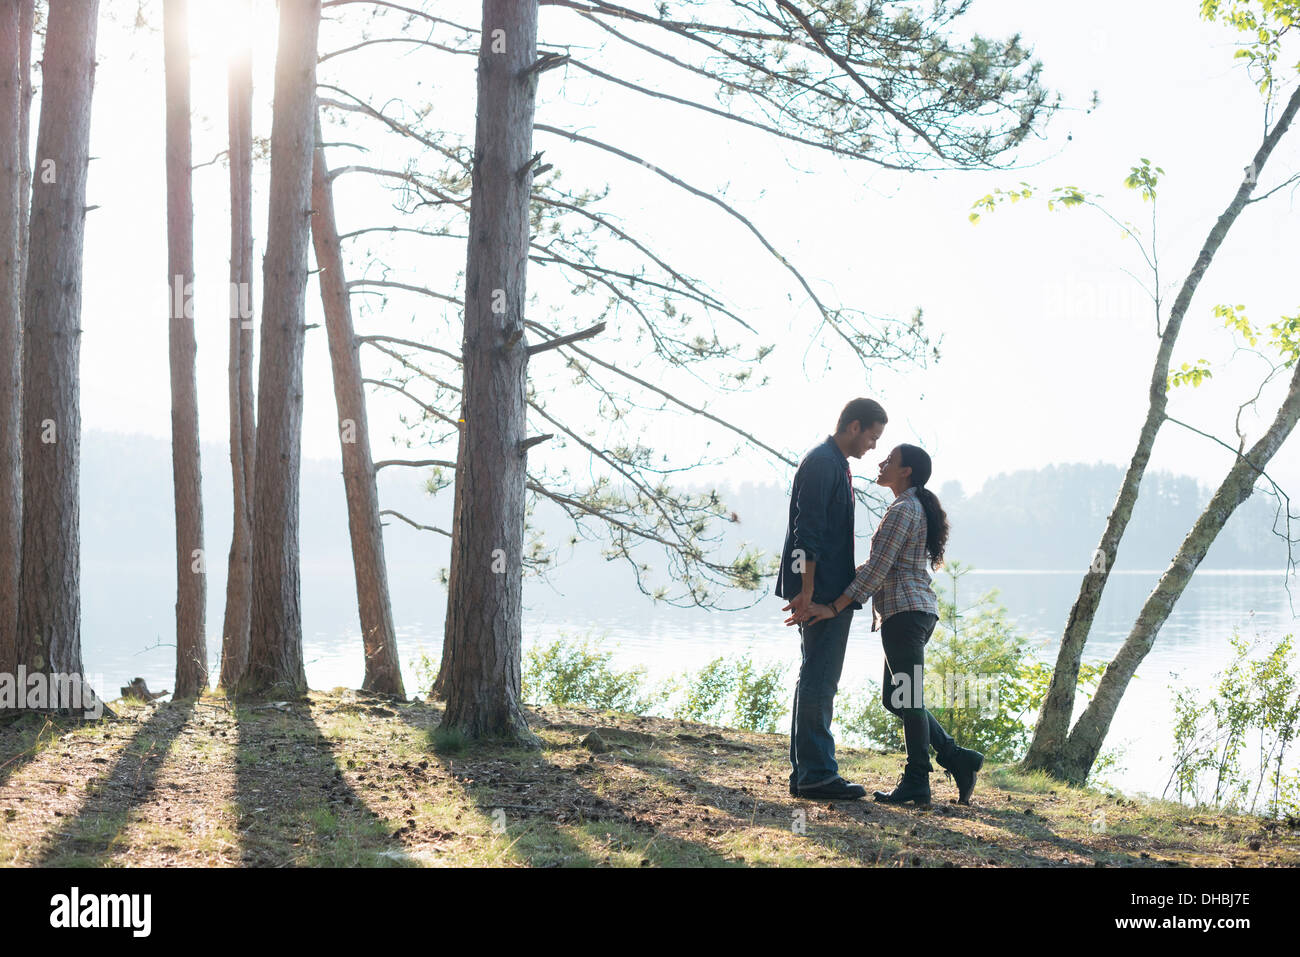 Lakeside.  A couple walking in the shade of pine trees in summer. - Stock Image